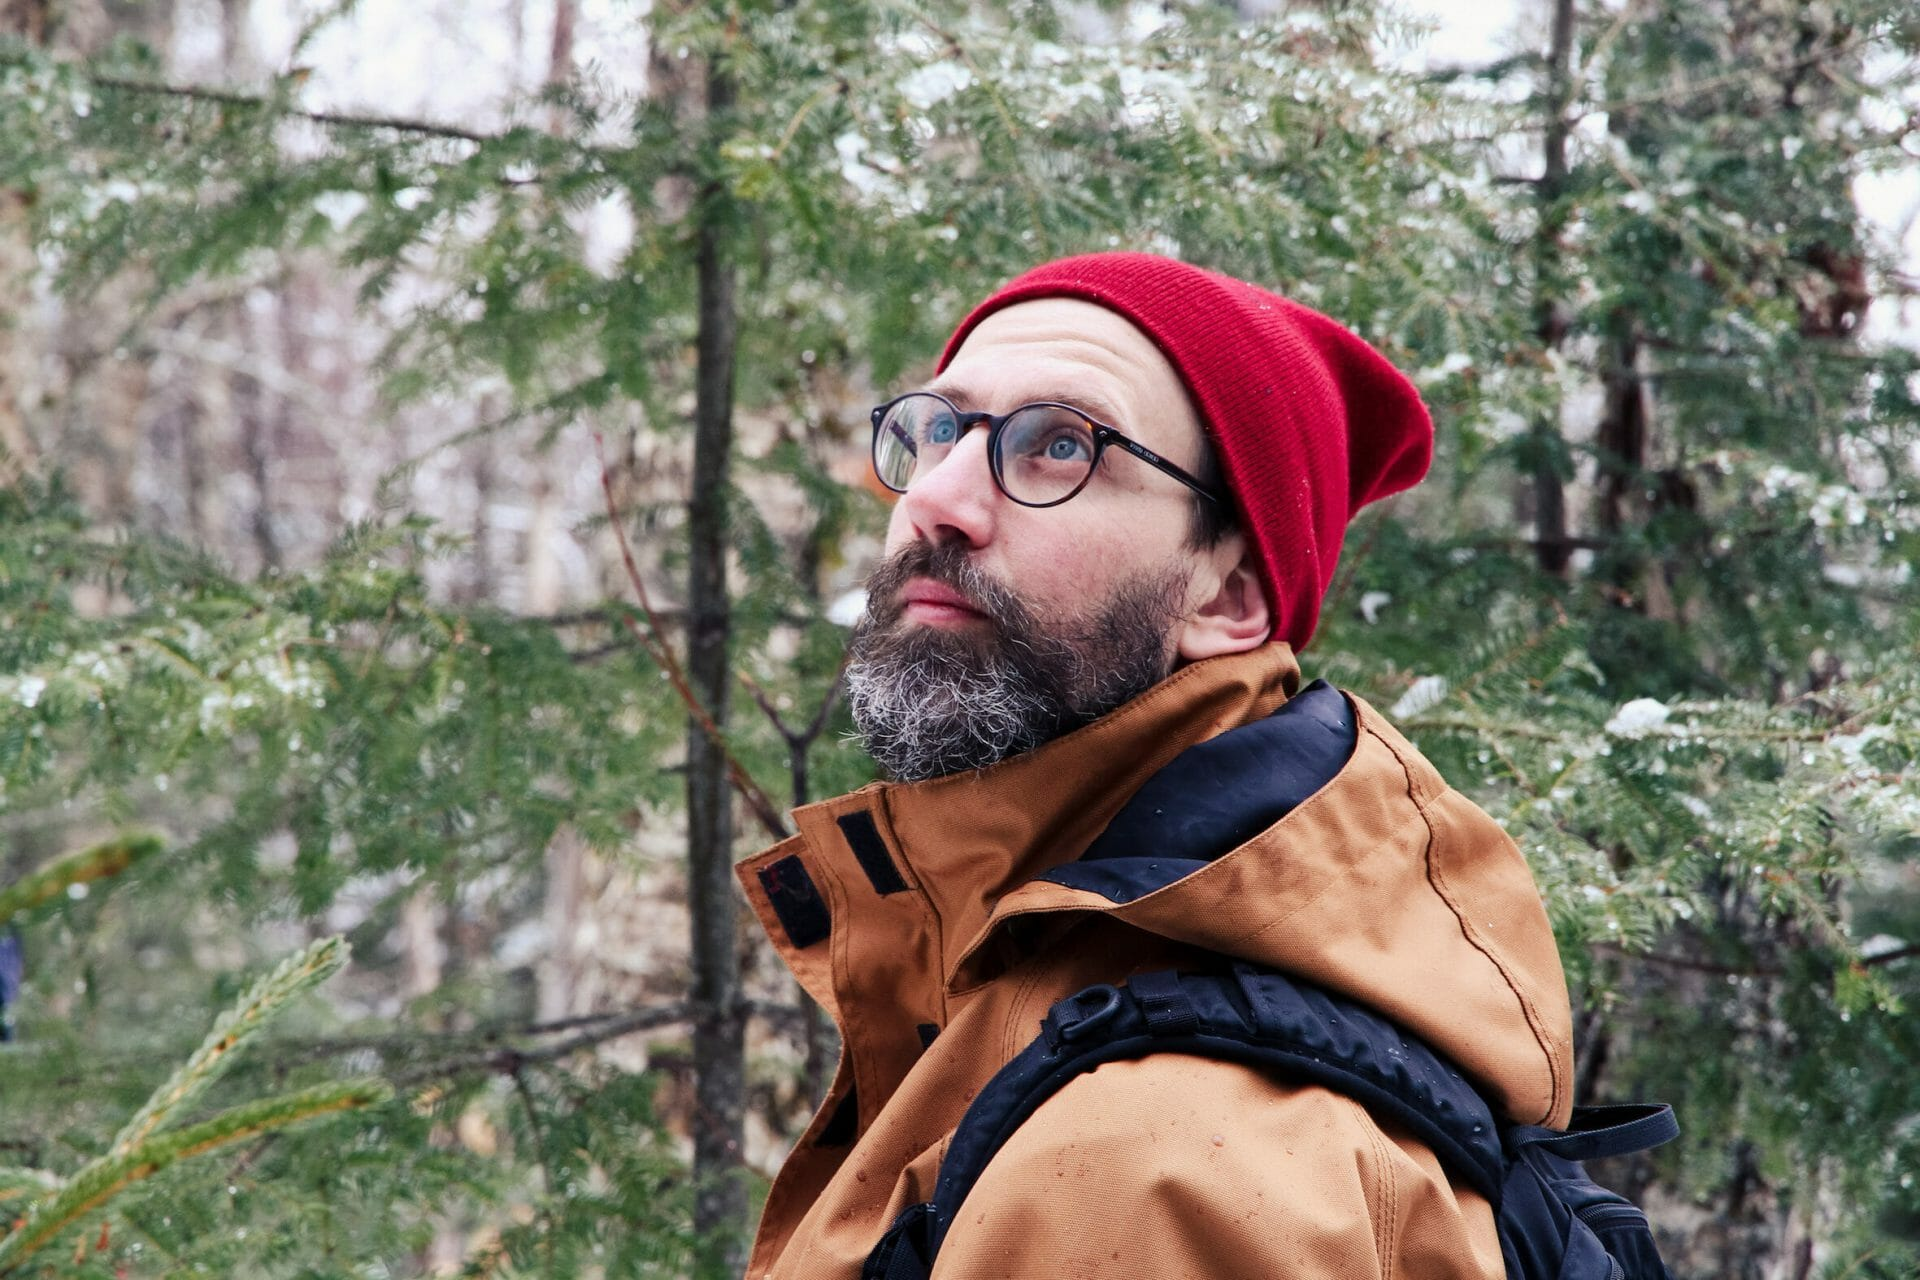 A man with round glasses and a red hat looks up at the forest canopy.